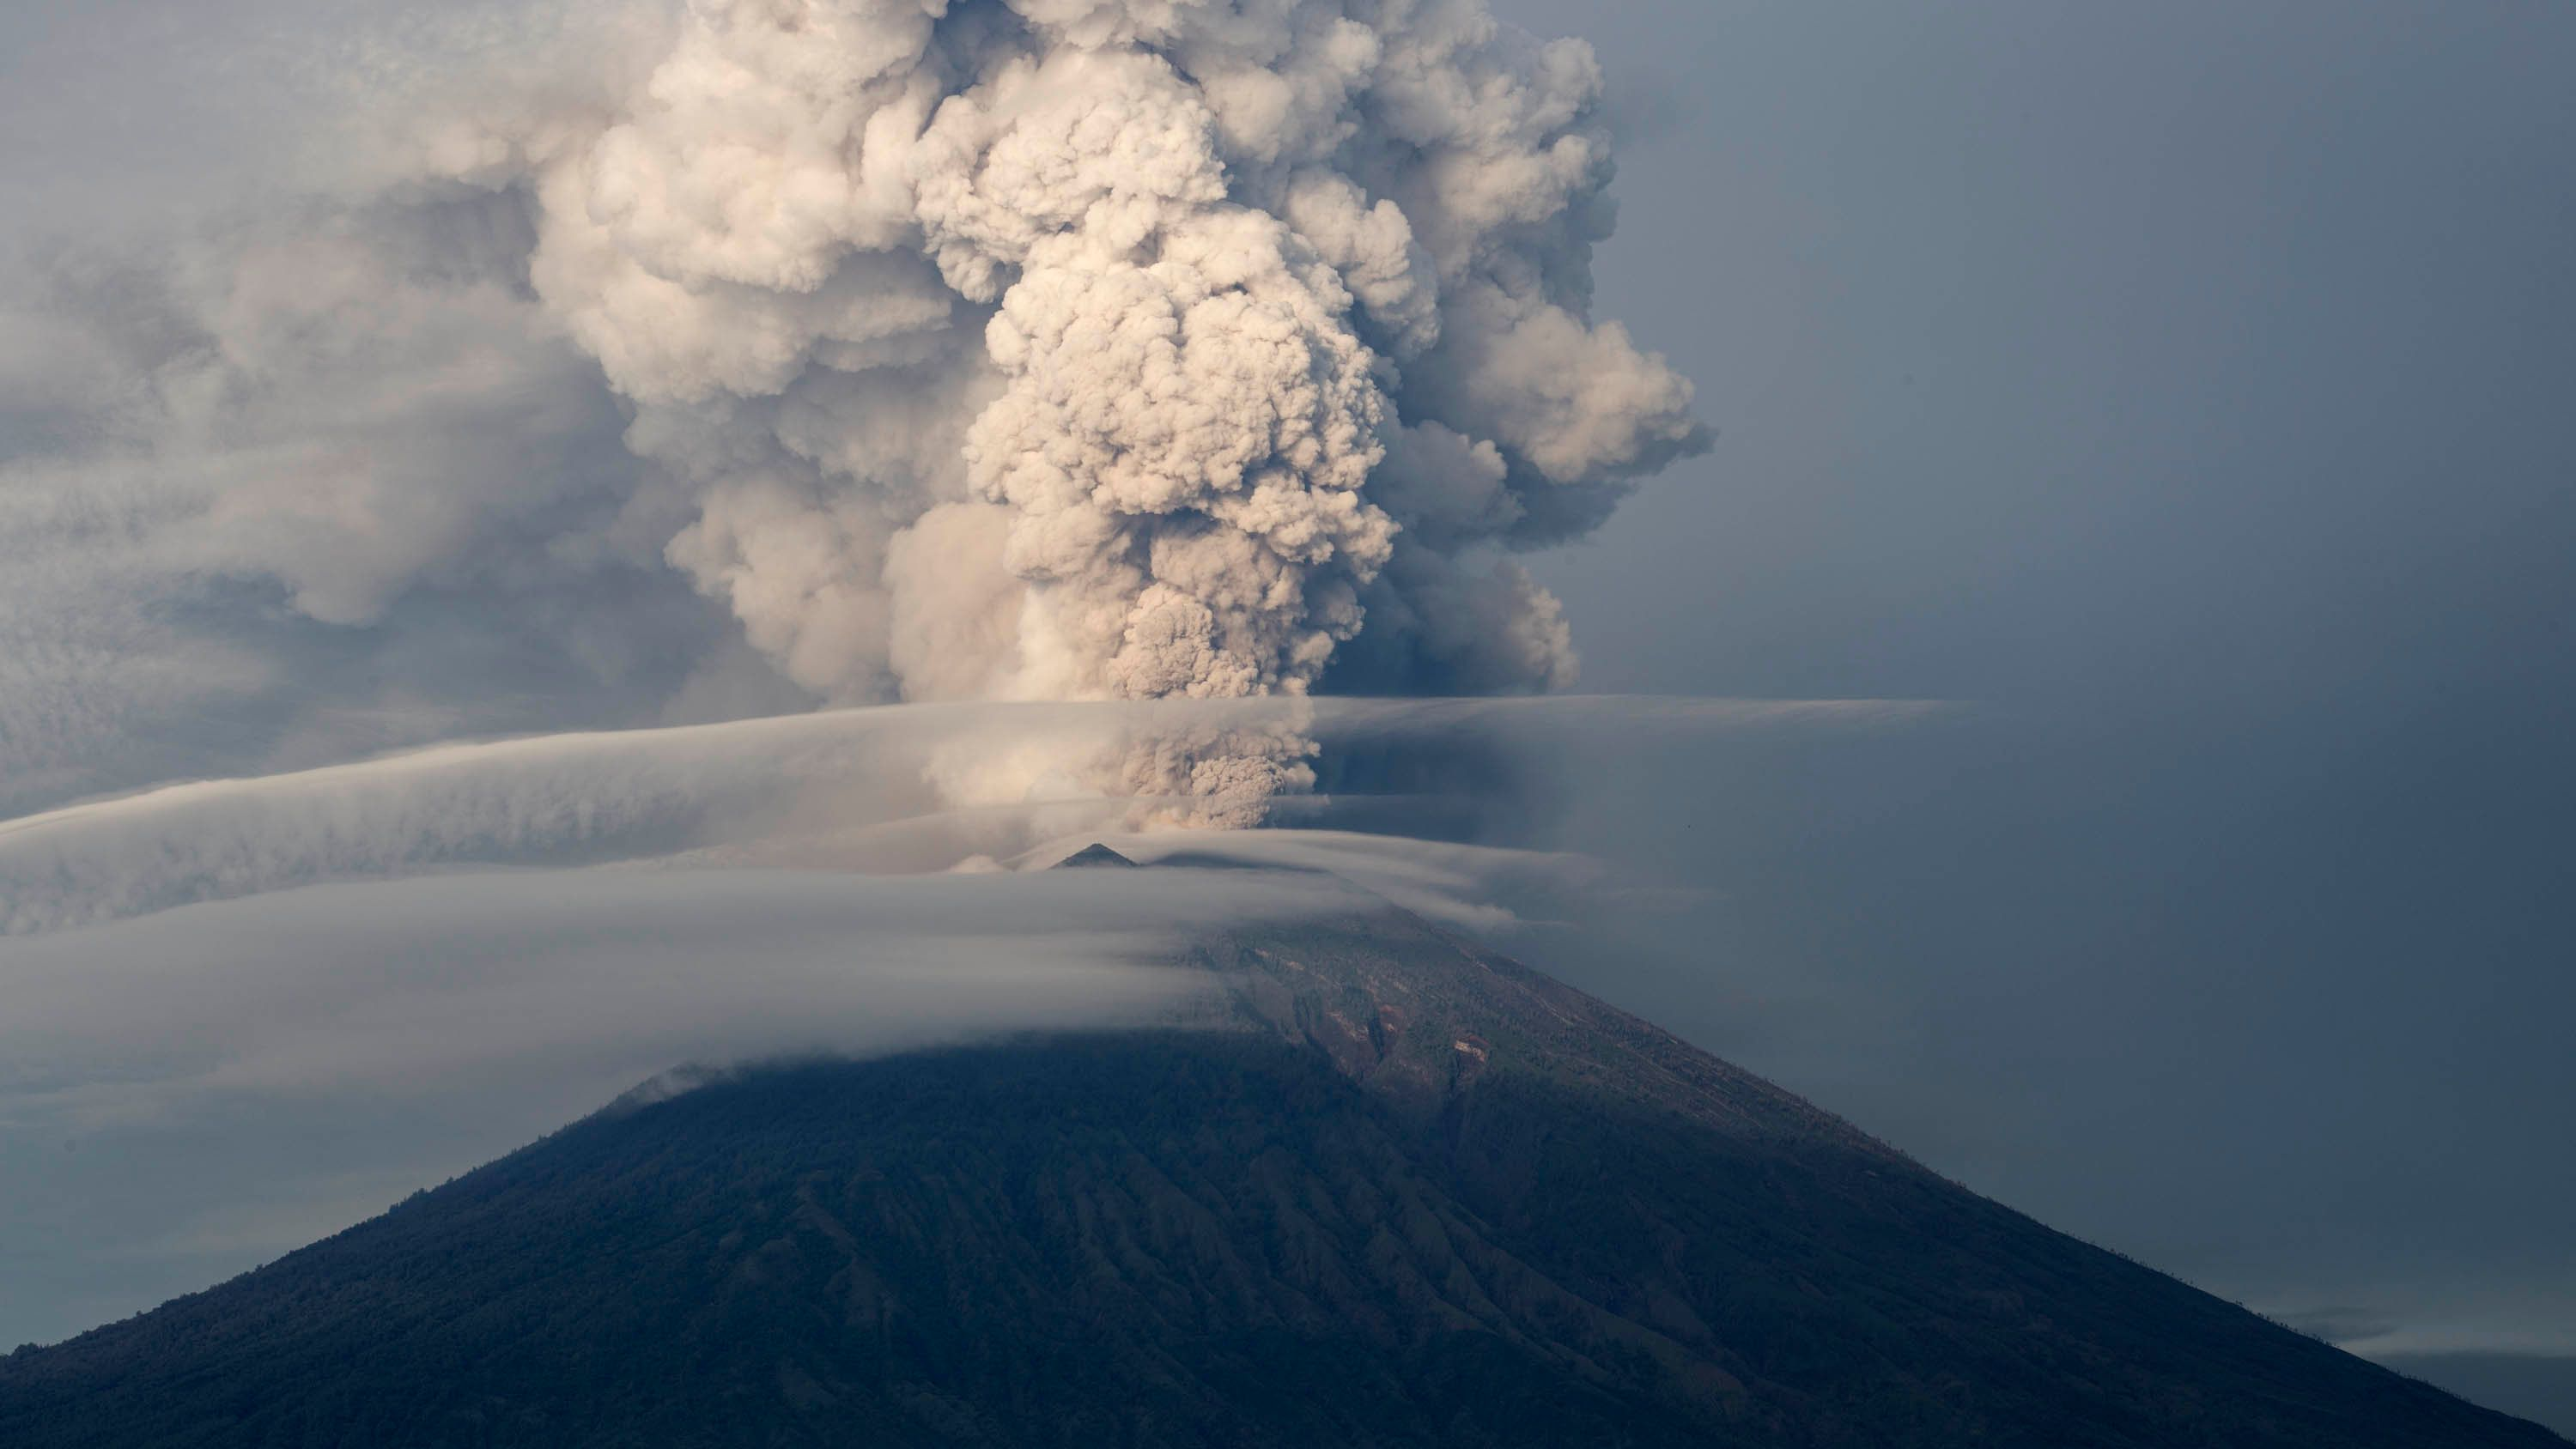 Mount Agung's eruptions have already covered some areas of Bali in ash, and the danger level is at its highest.